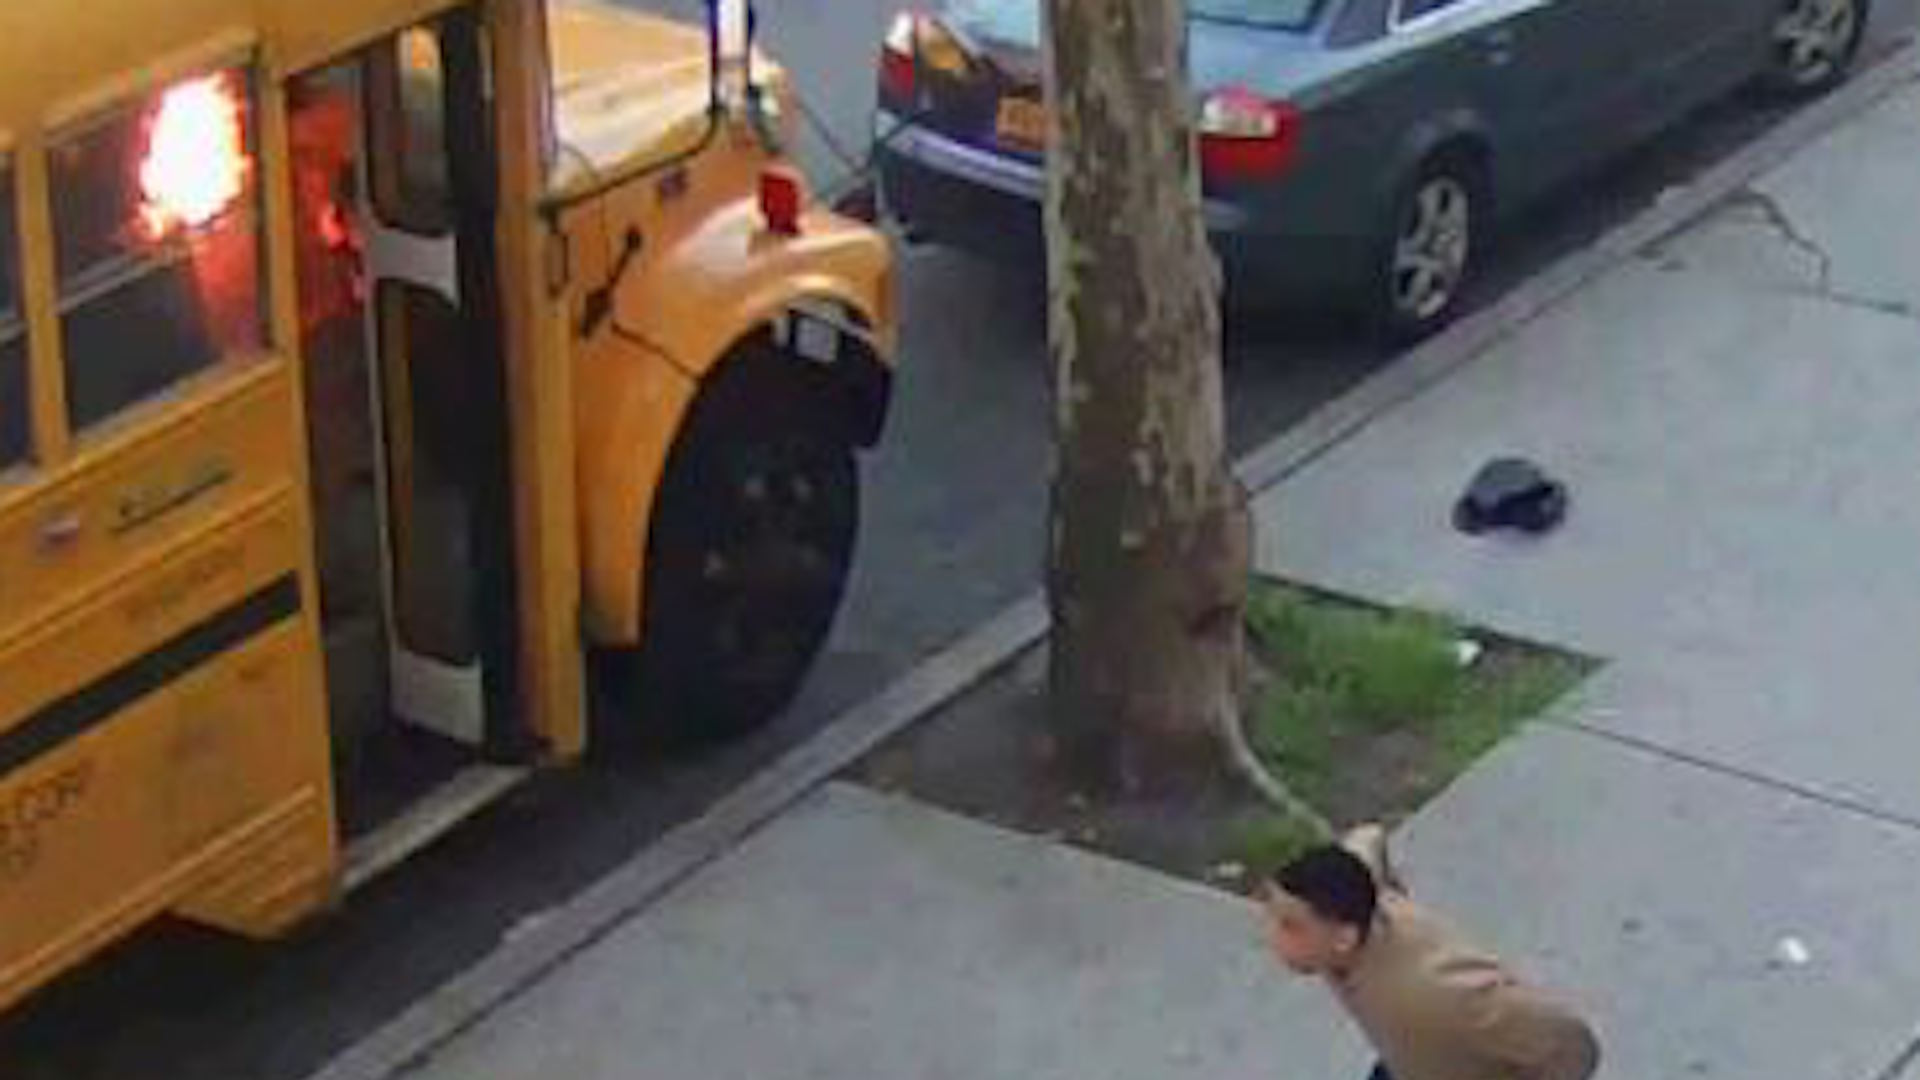 A Jewish school bus — and old tensions — allegedly set aflame by young black males in N.Y. neighborhood